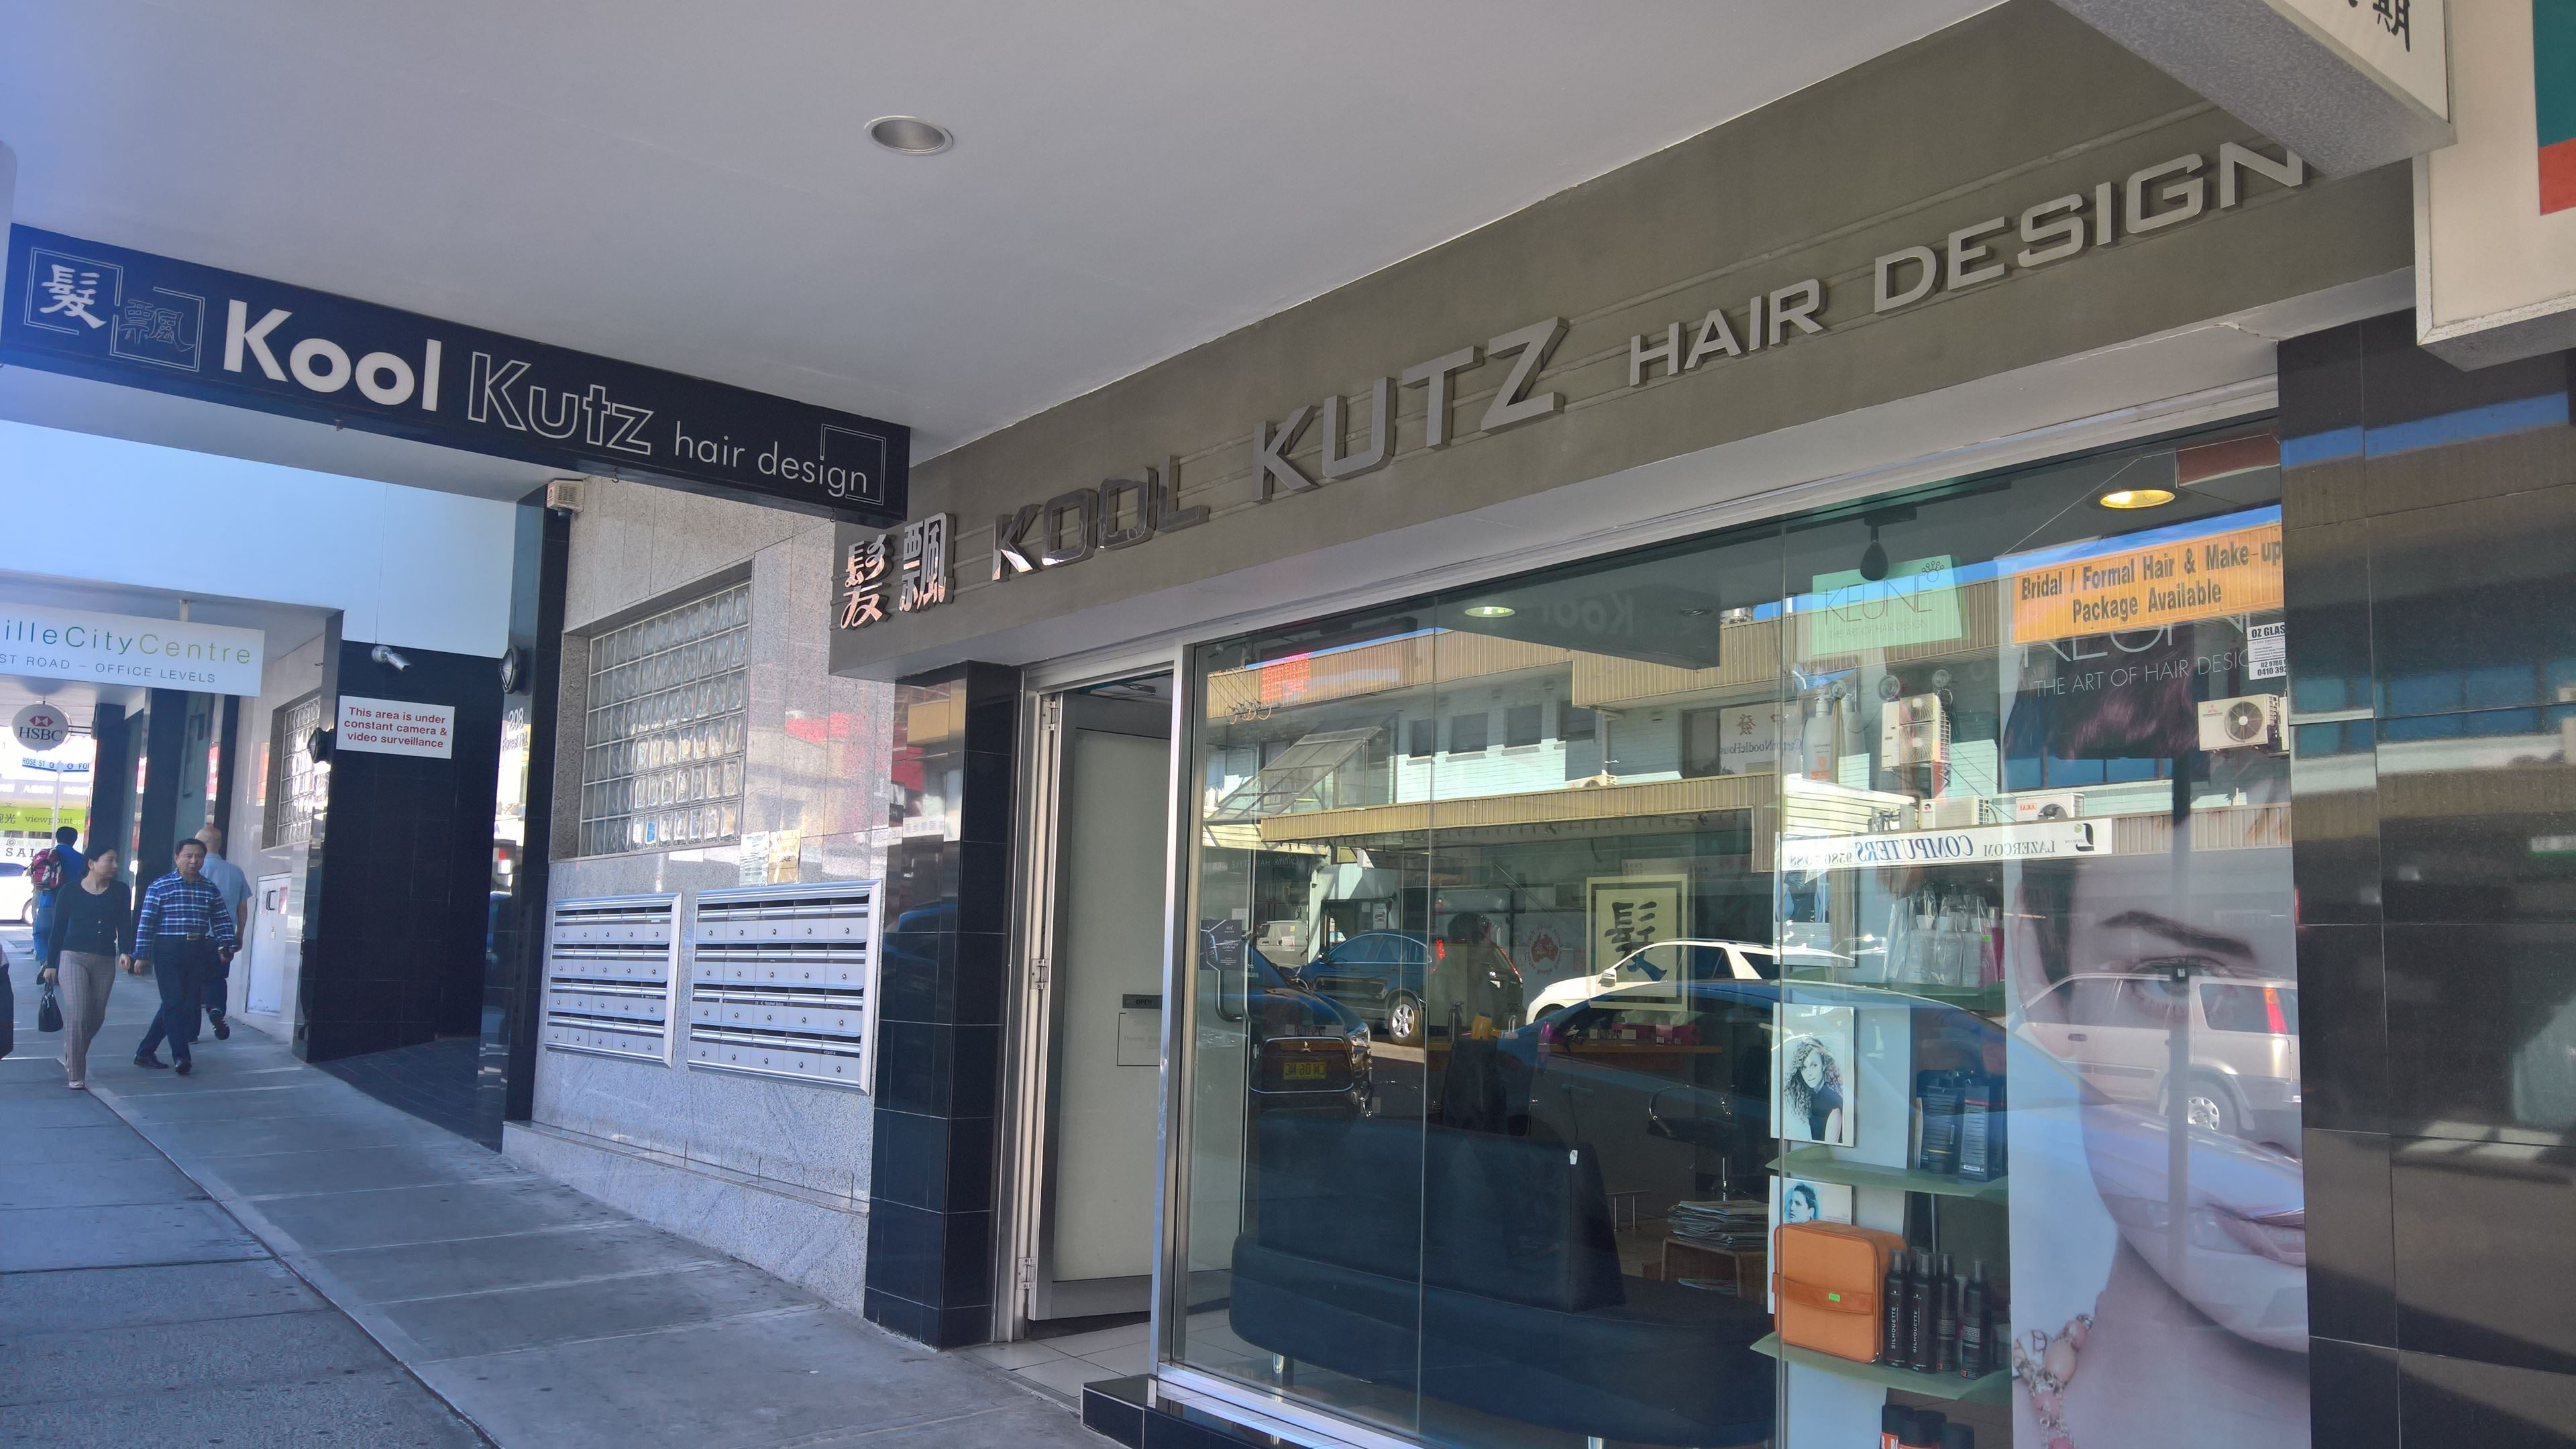 Kool Kutz Hair Design Haircuts Hairdresser